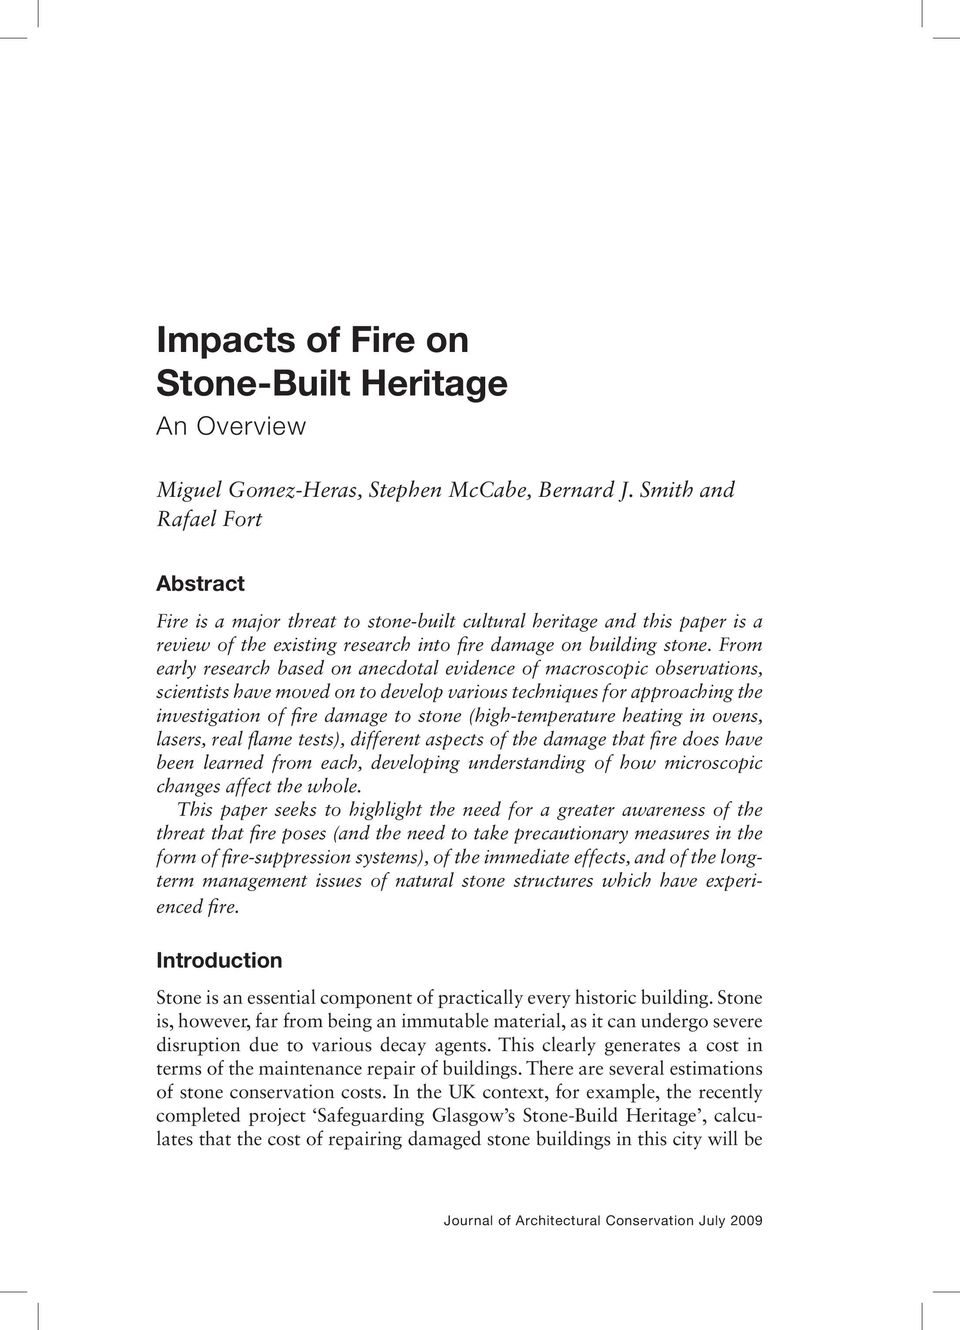 From early research based on anecdotal evidence of macroscopic observations, scientists have moved on to develop various techniques for approaching the investigation of fire damage to stone